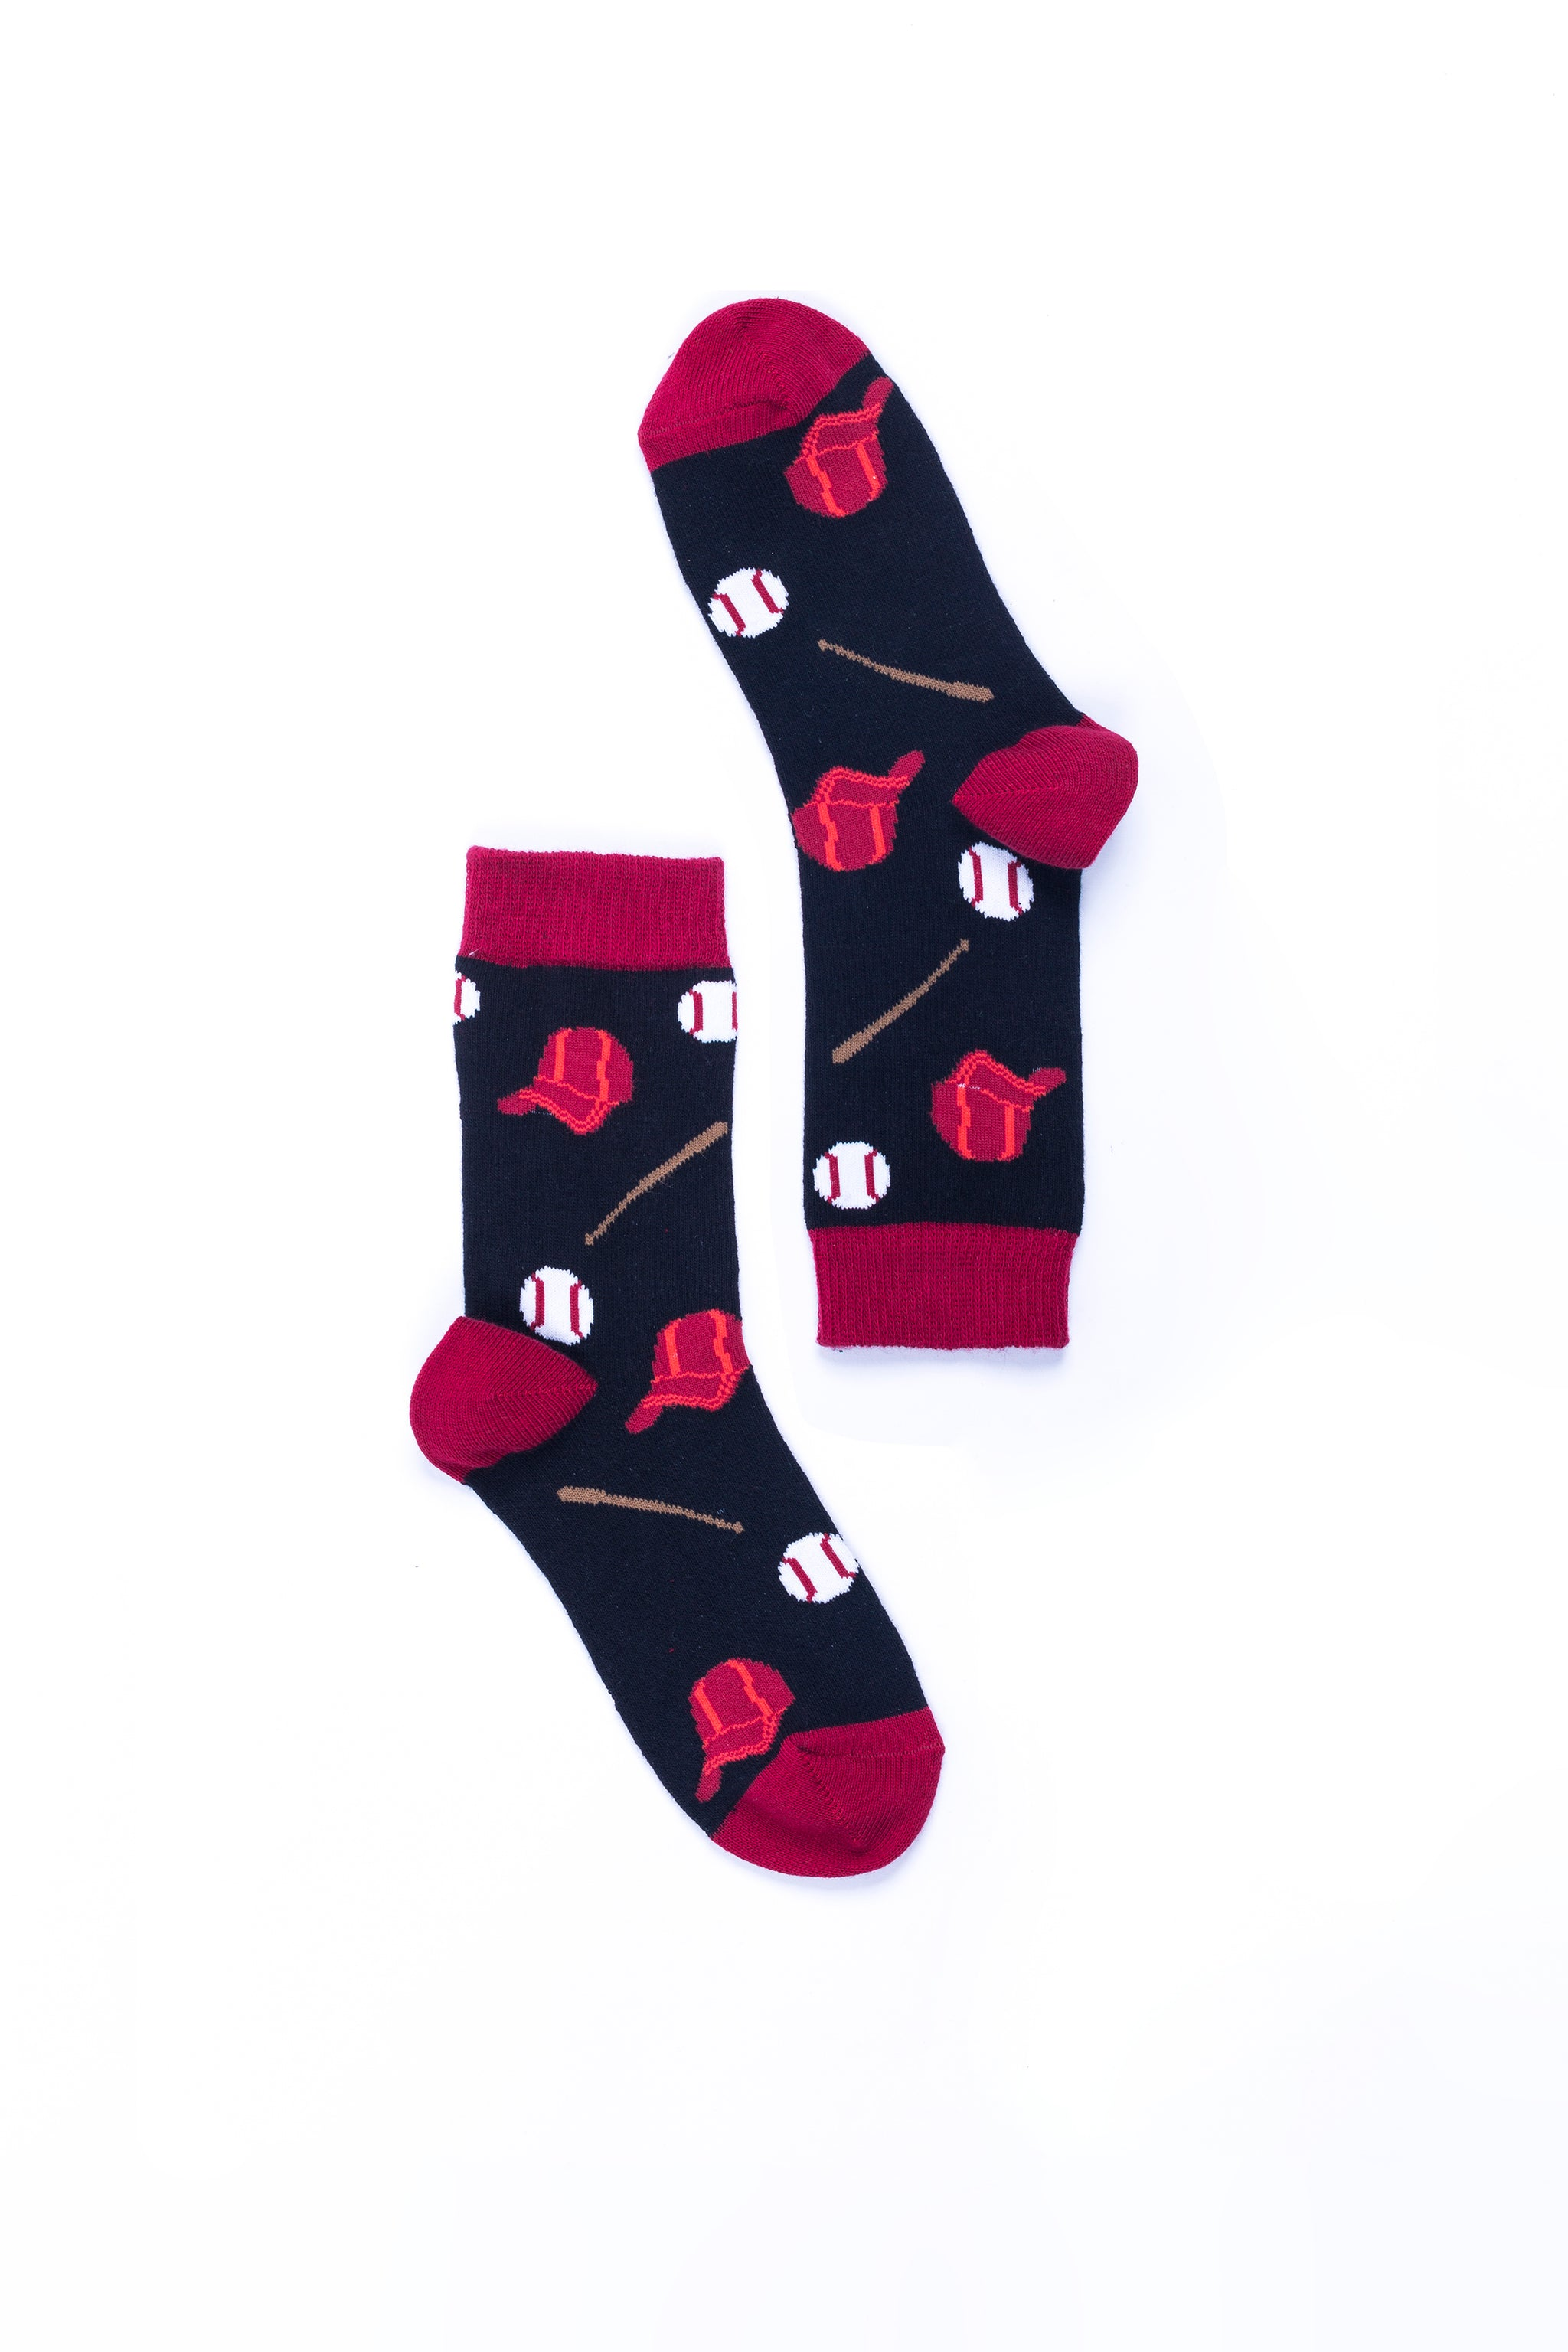 Women's Baseball Socks